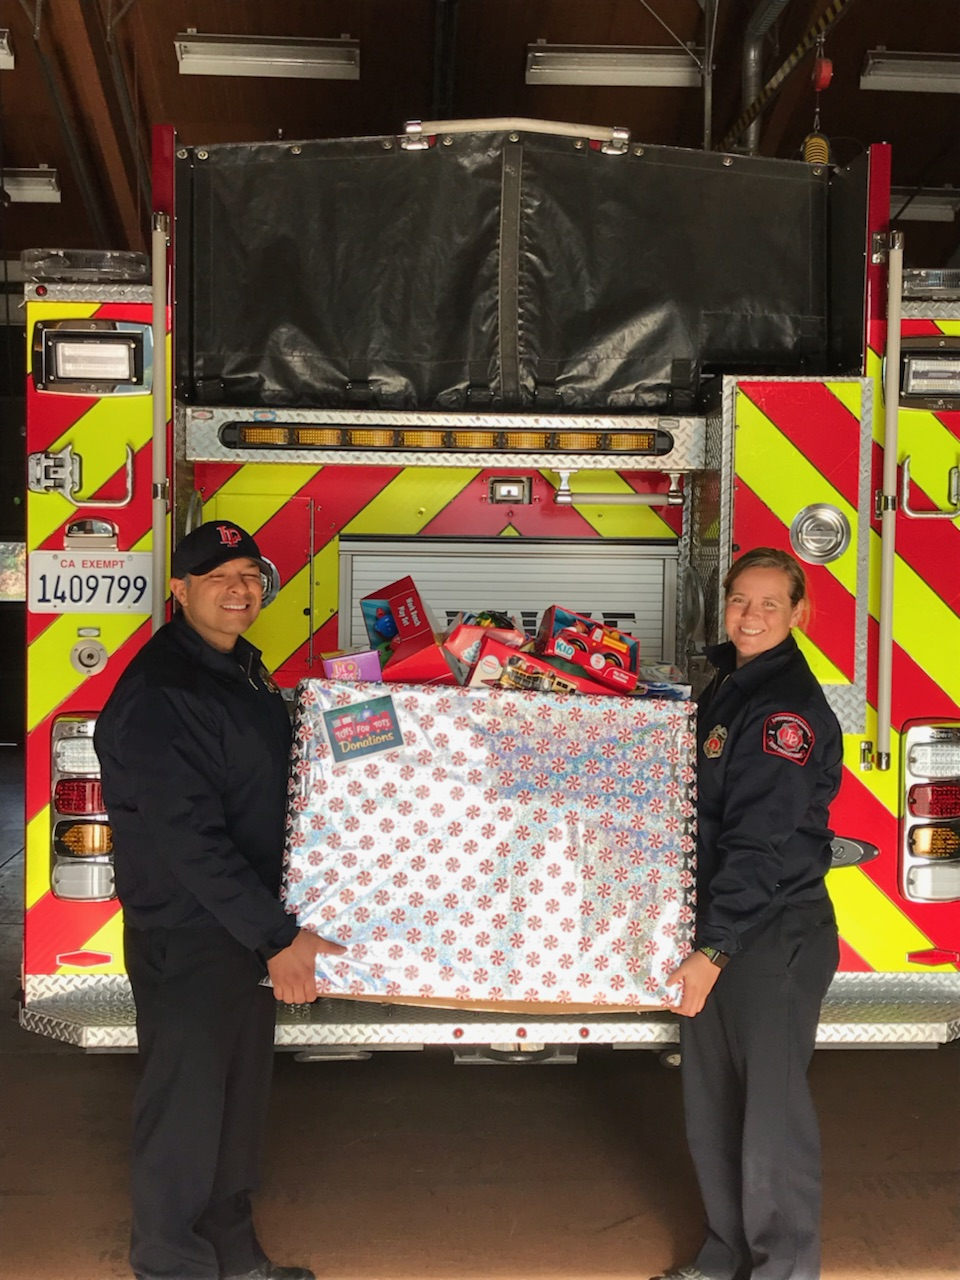 Police Toys For Tots 2017 : Toys for tots stockton ca wow